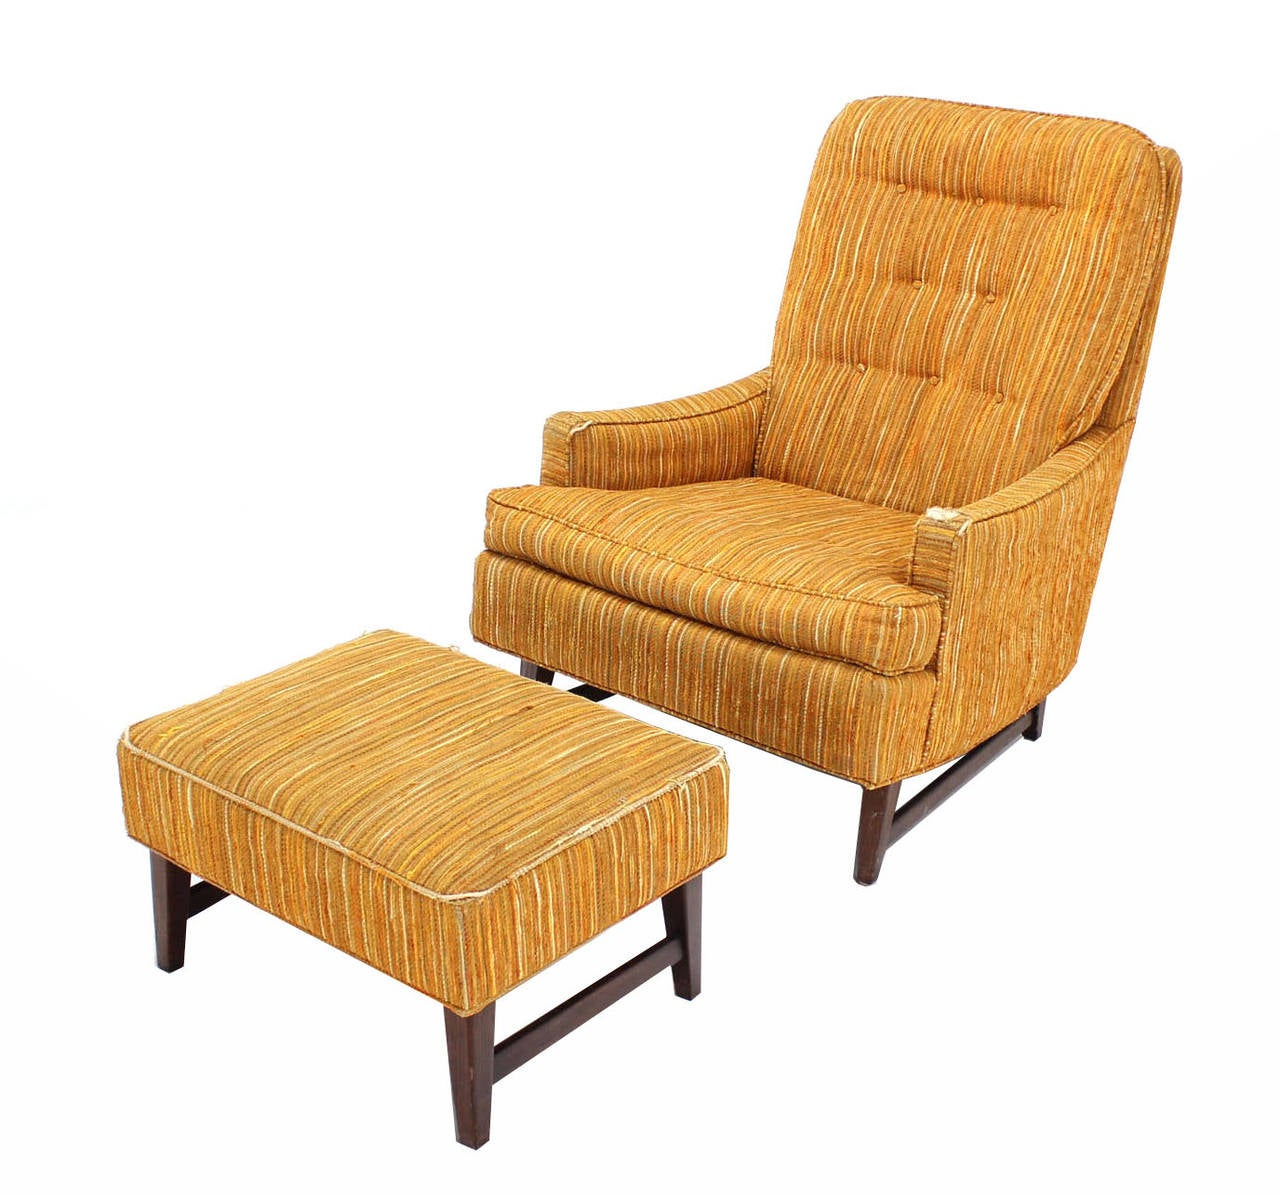 Selig Lounge Chair Selig Lounge Chair And Matching Ottoman With Upholstery At